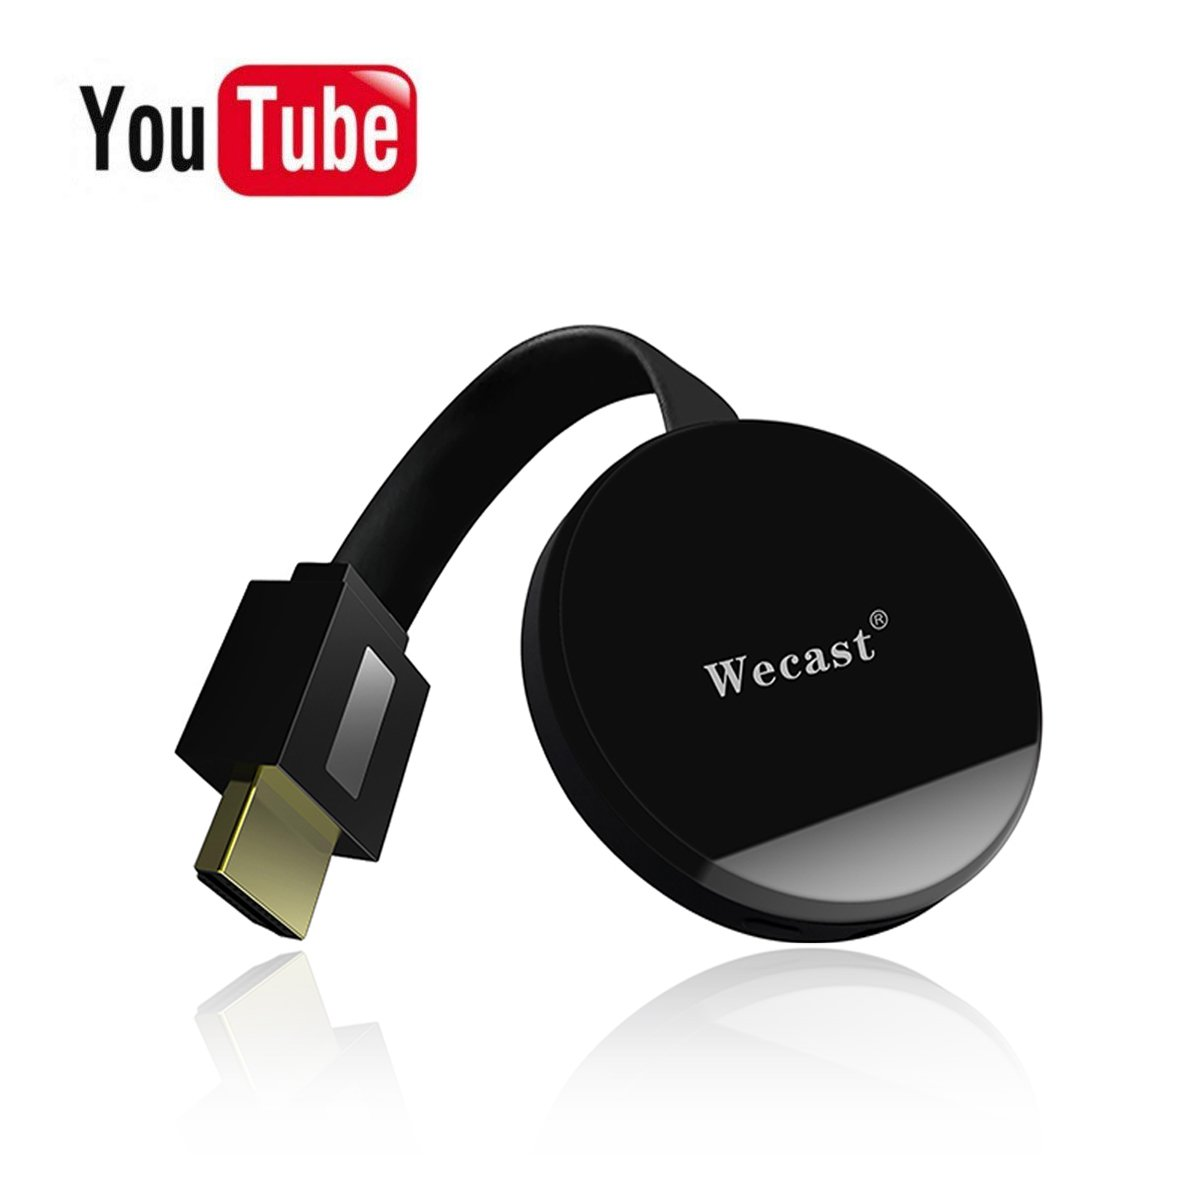 SUMBOAT Wireless 1080P Mini Display Dongle Receiver Sharing HD Video from Projectors Cell Phones Tablet PC Support Airplay DLNA Miracast